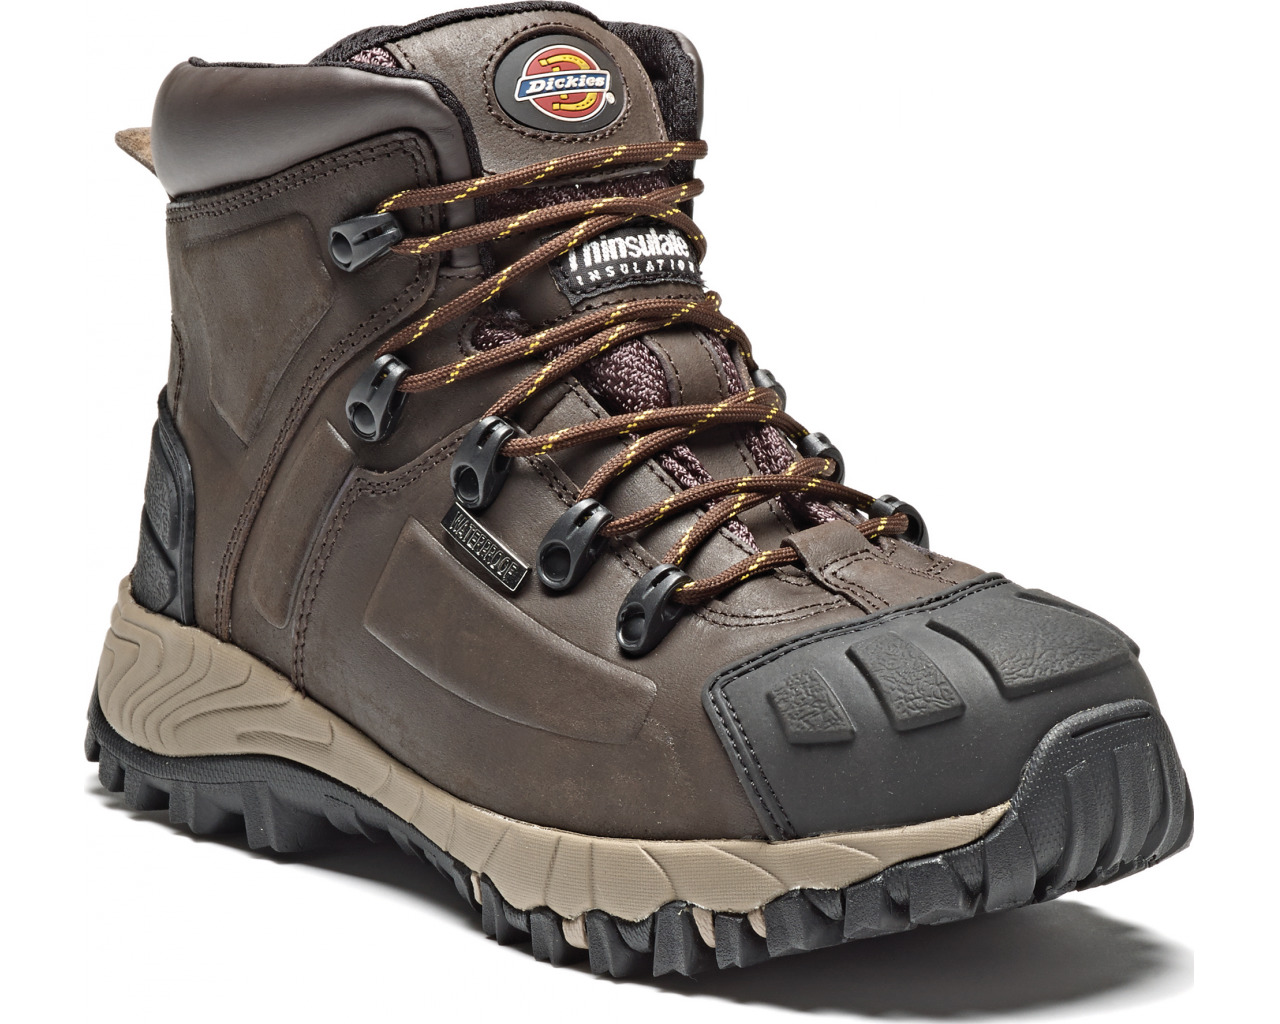 toe hd redback boots comfortable hero product most comforter escape steel shoes easy